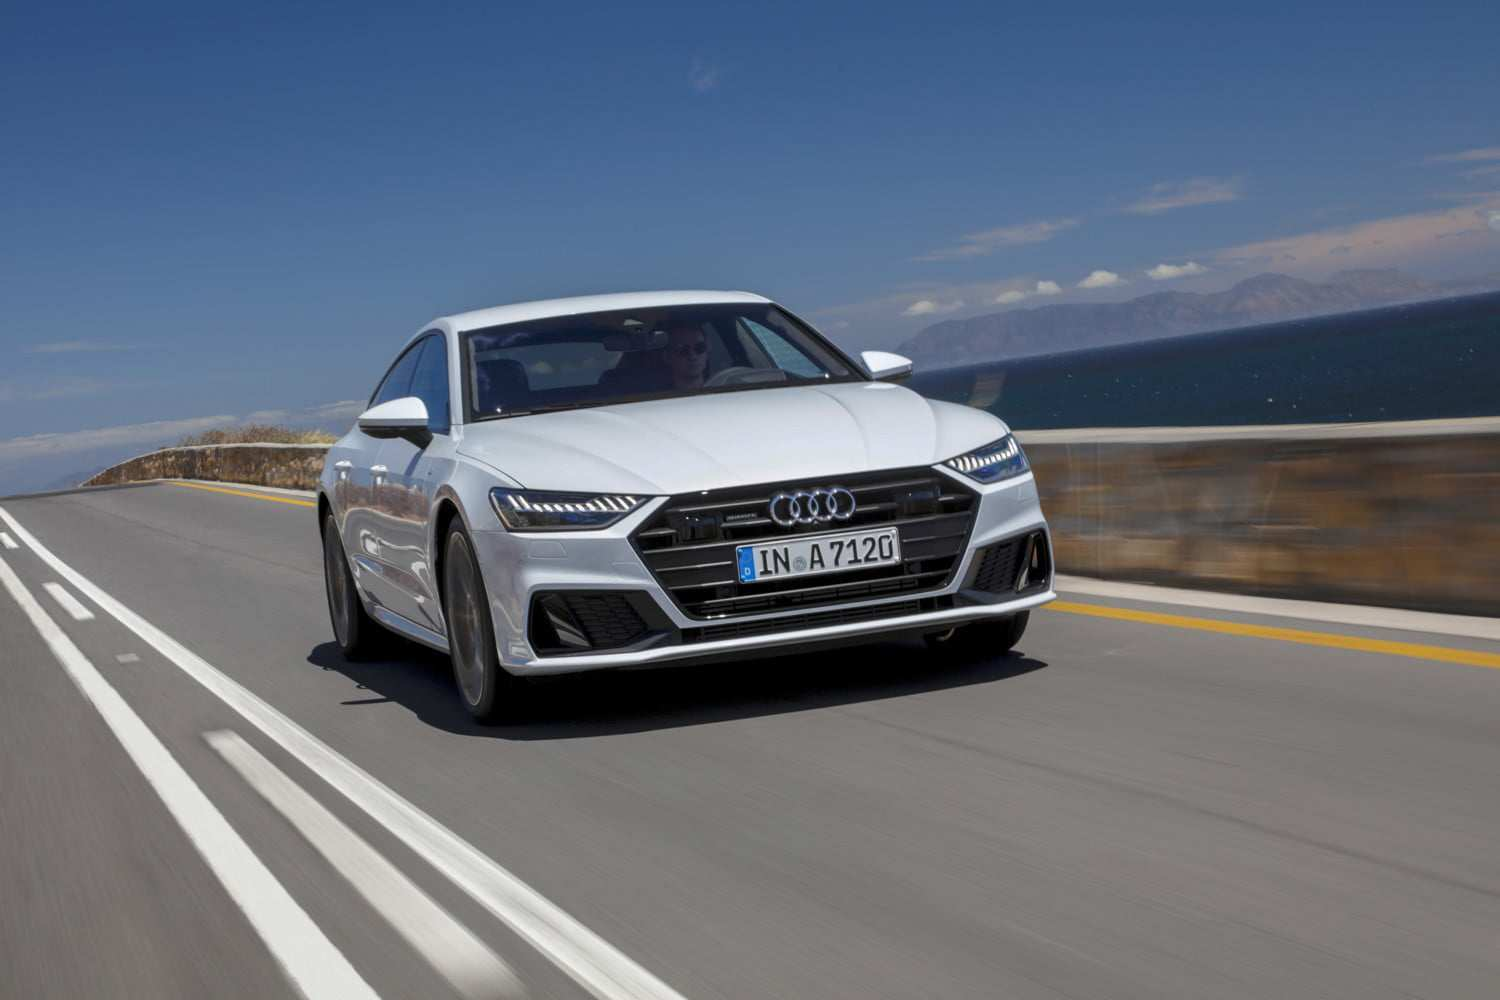 99 The 2019 Audi A7 Review Style by 2019 Audi A7 Review